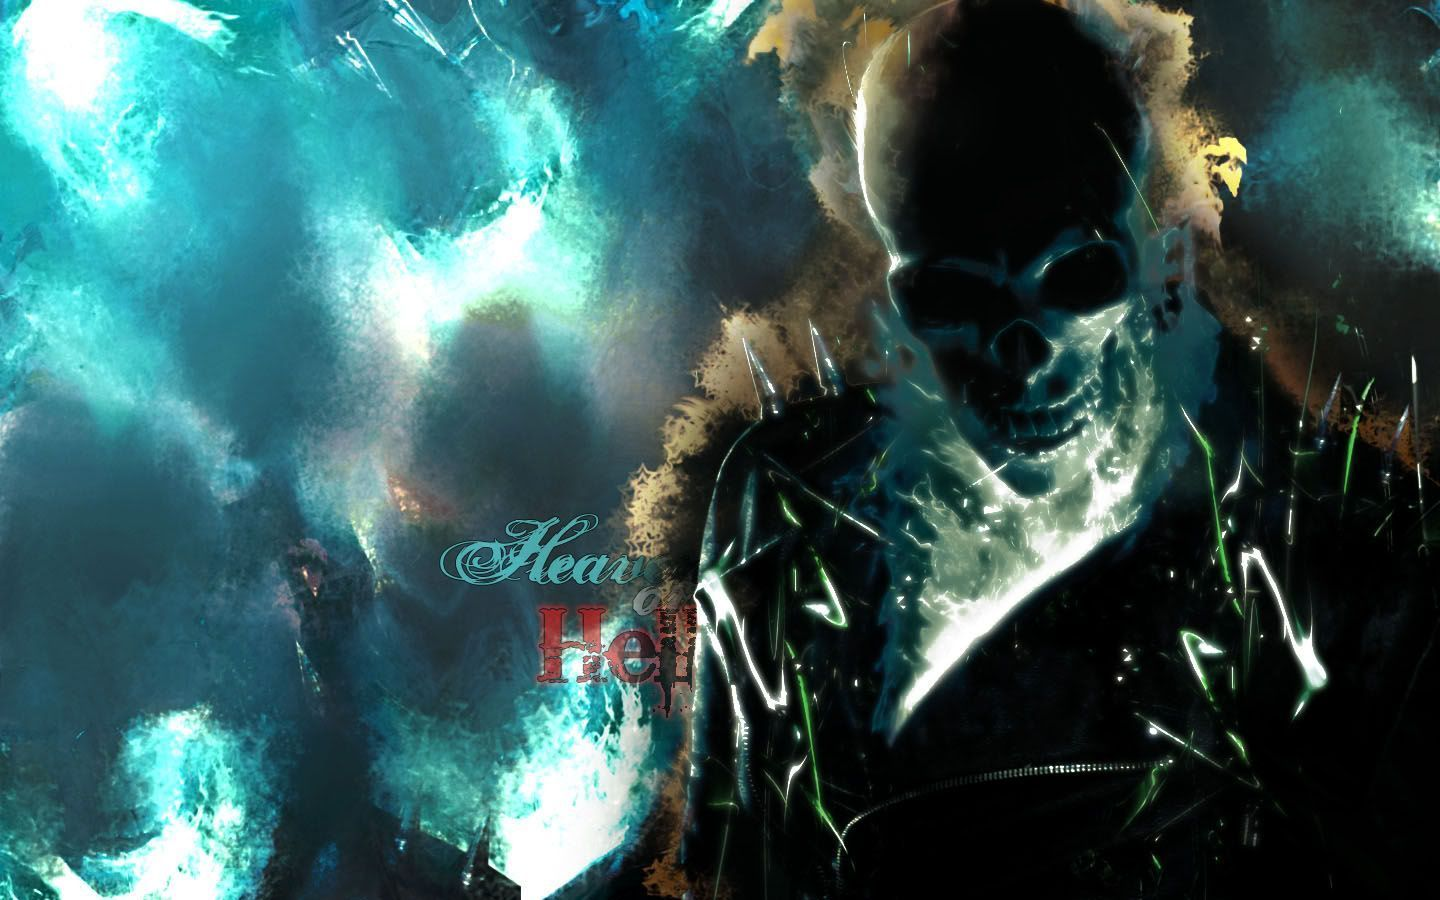 1440x900 Blue Ghost Rider Wallpaper - WallpaperSafari | Ghost rider ...